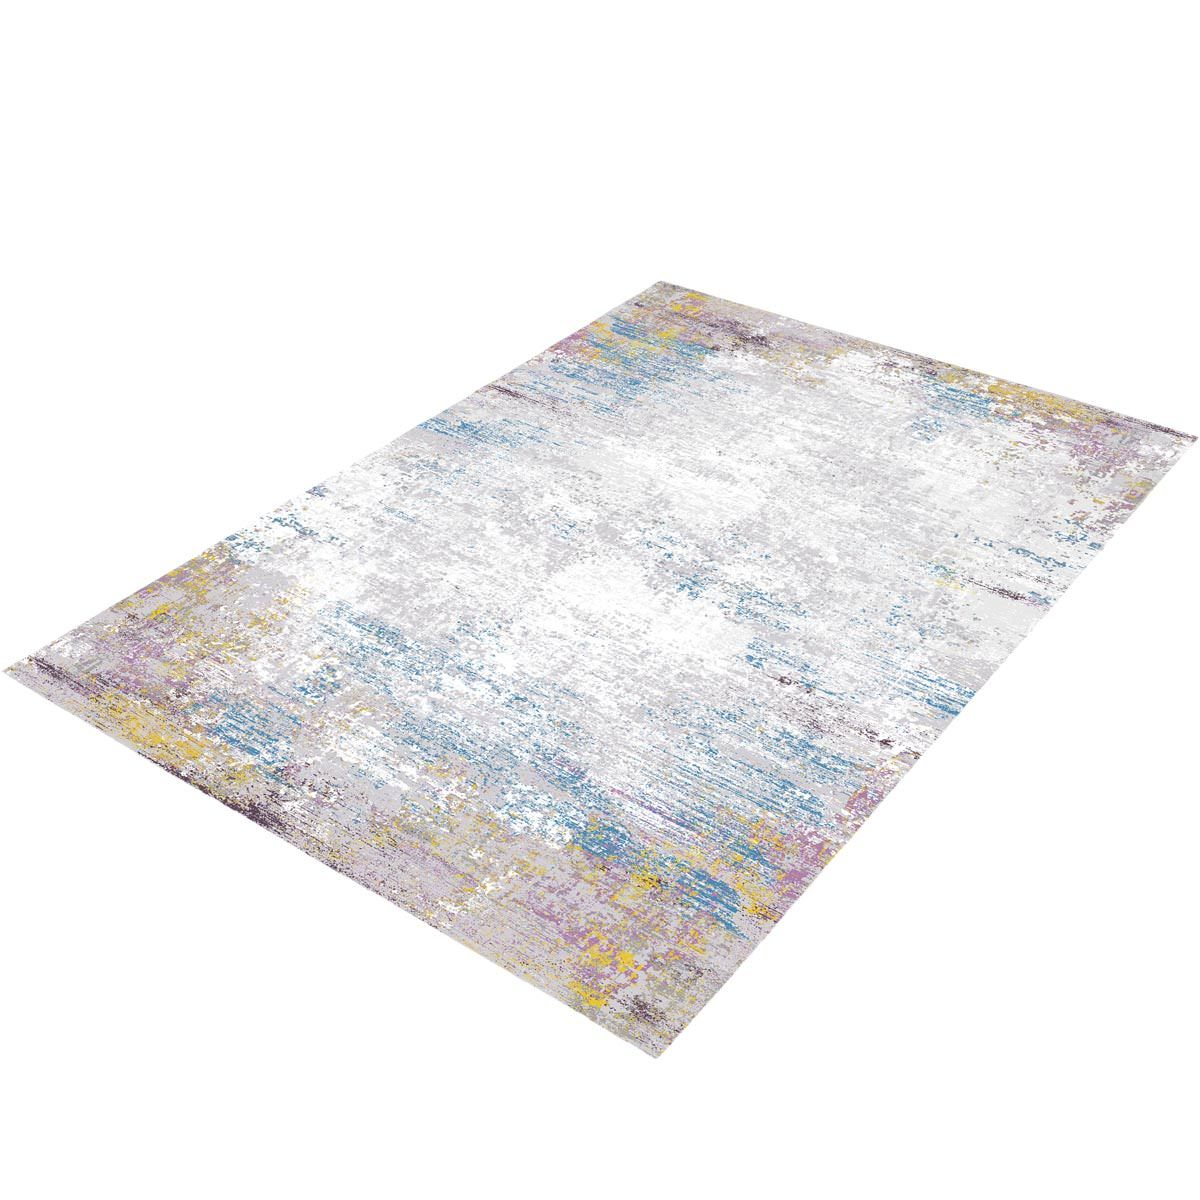 Jaipur Rug 03 Purple/Light Blue/Yellow 3